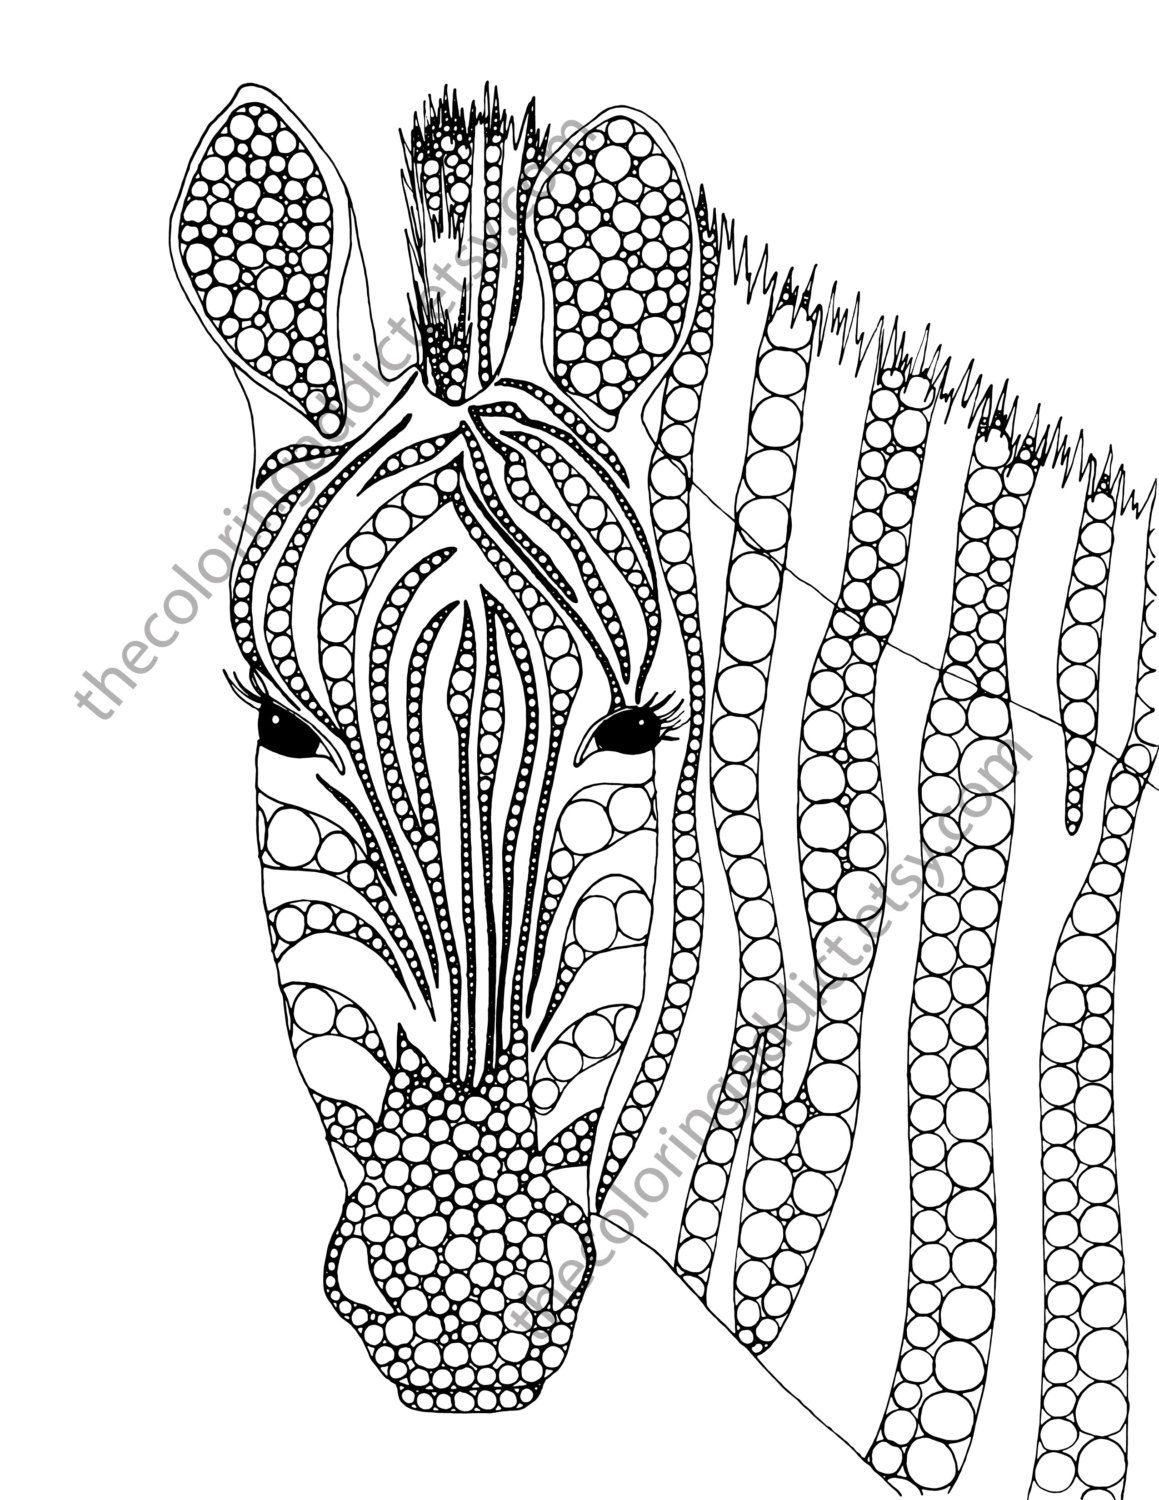 Printable coloring pictures of zebras - Zebra Coloring Page Animal Coloring Page Adult Coloring Page Intricate Zebra Coloring Pdf Printable Zebra Coloring Digital Coloring